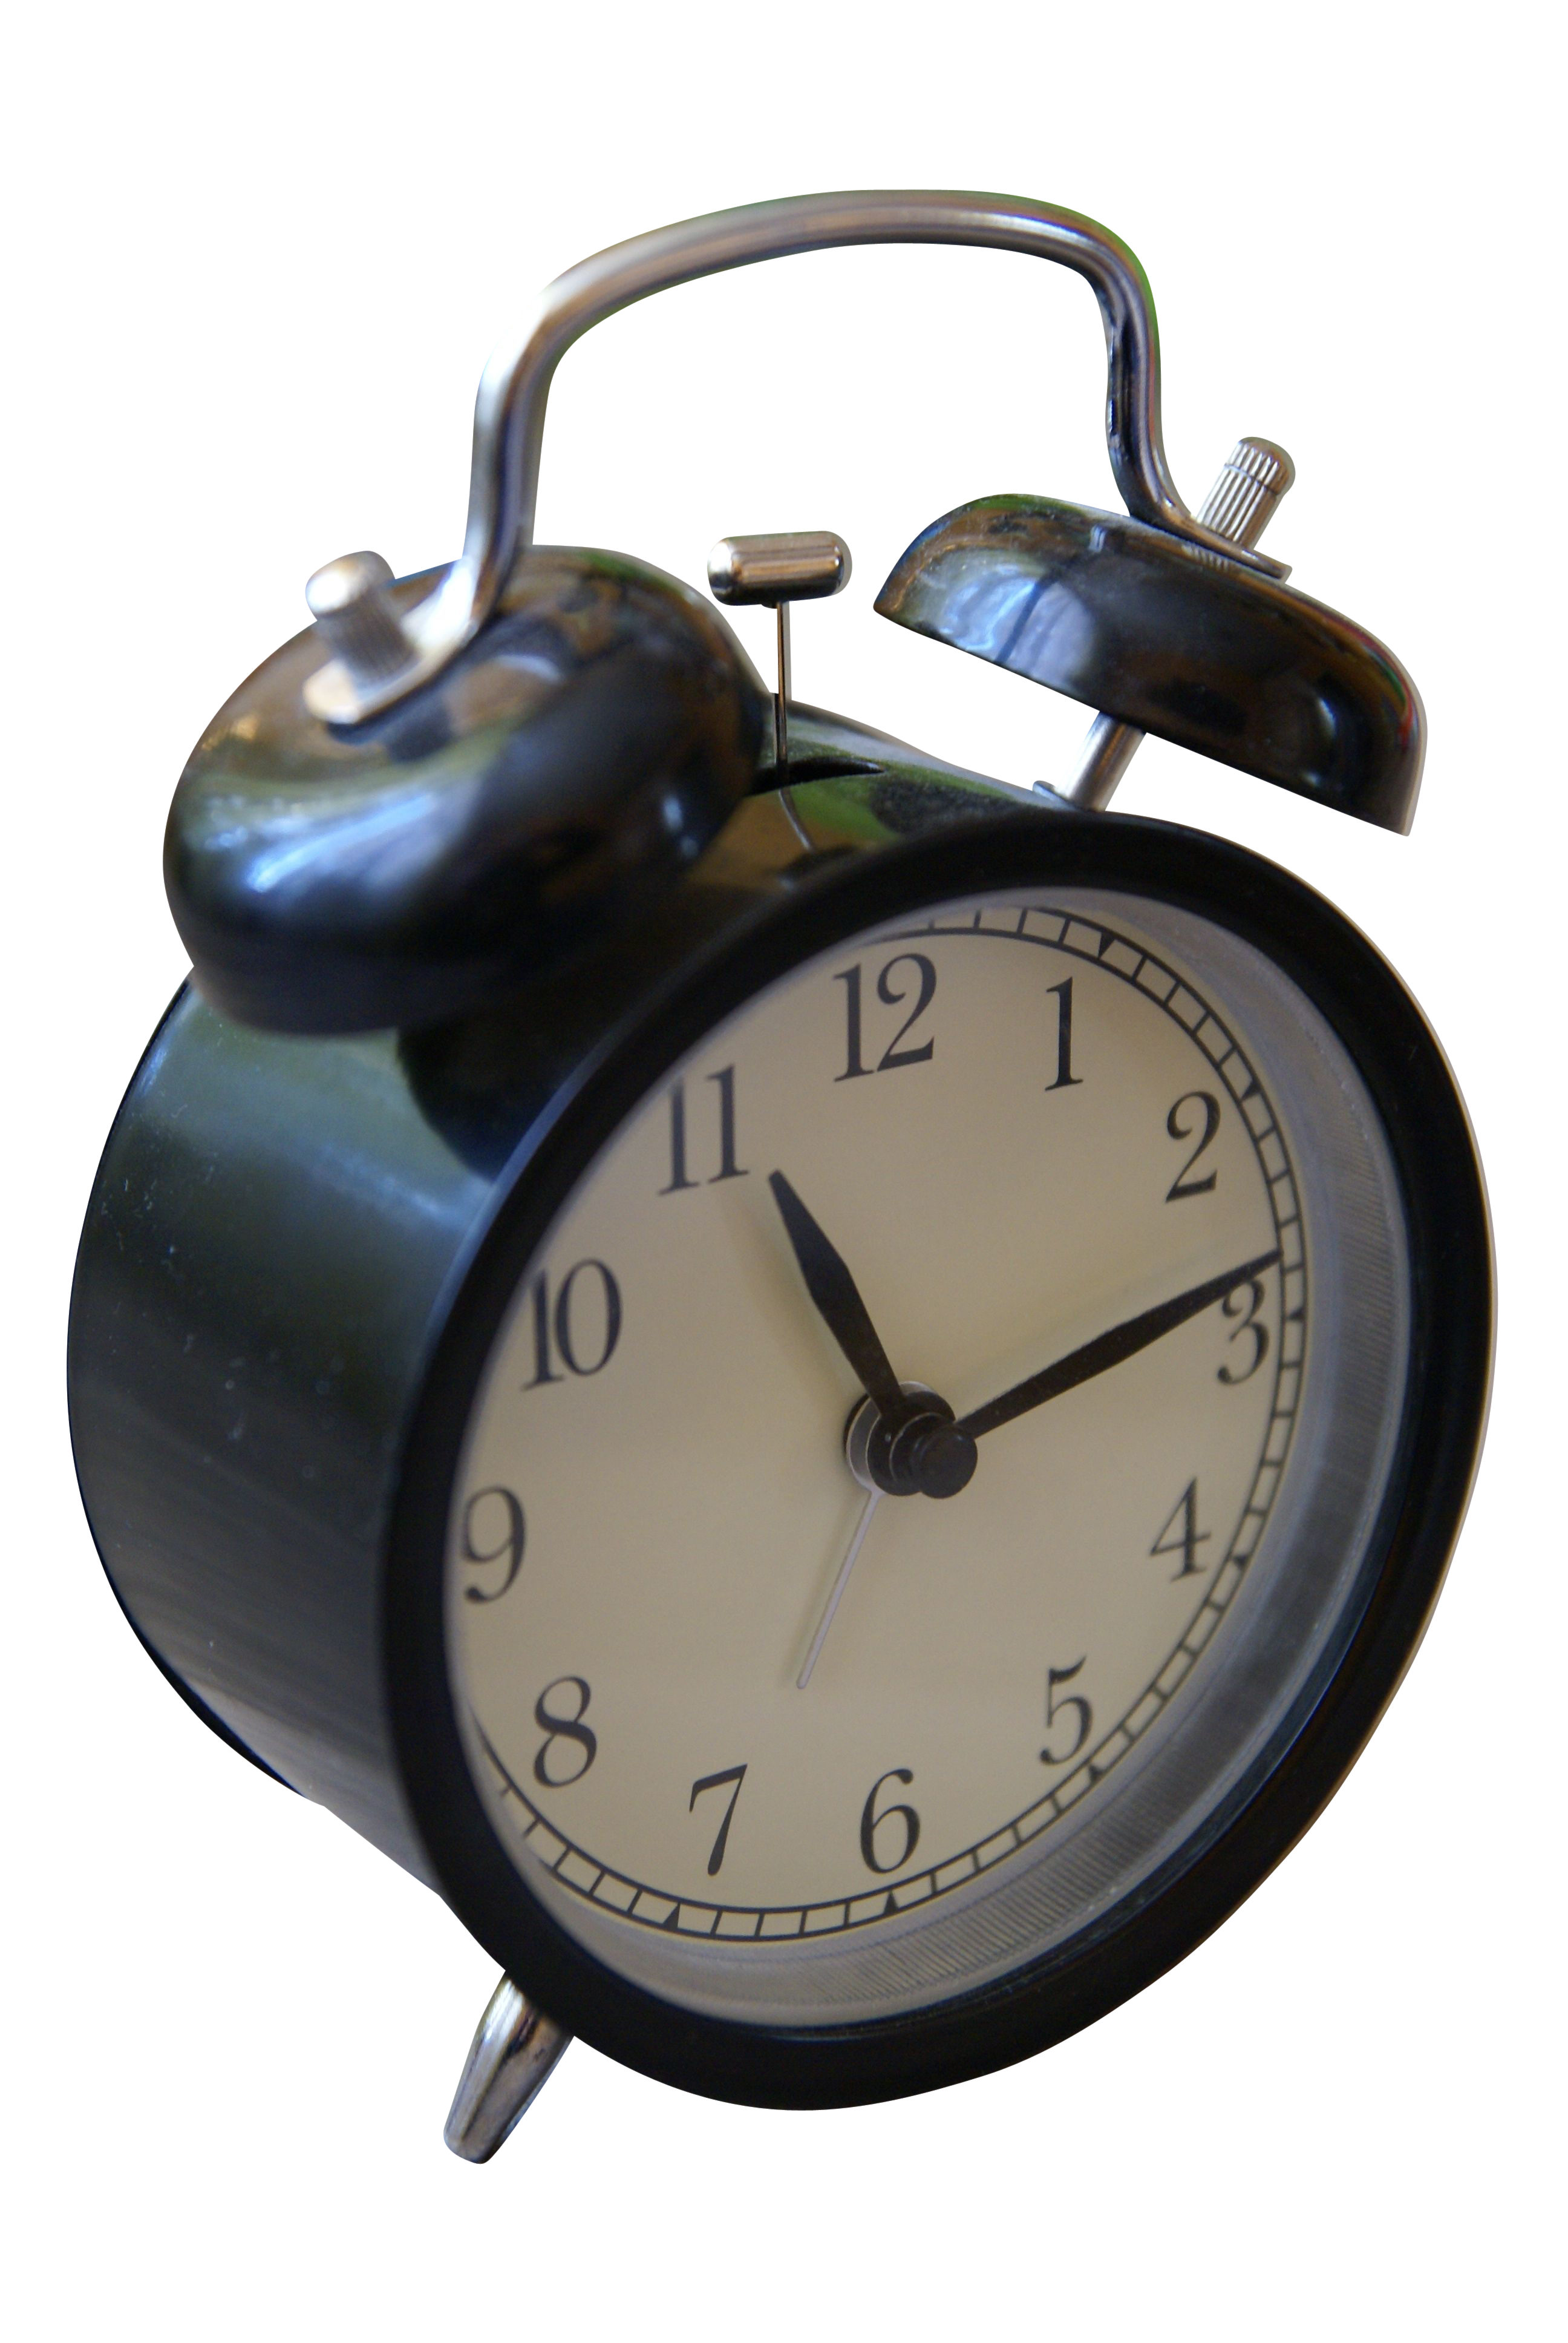 Black Table Clock PNG Image